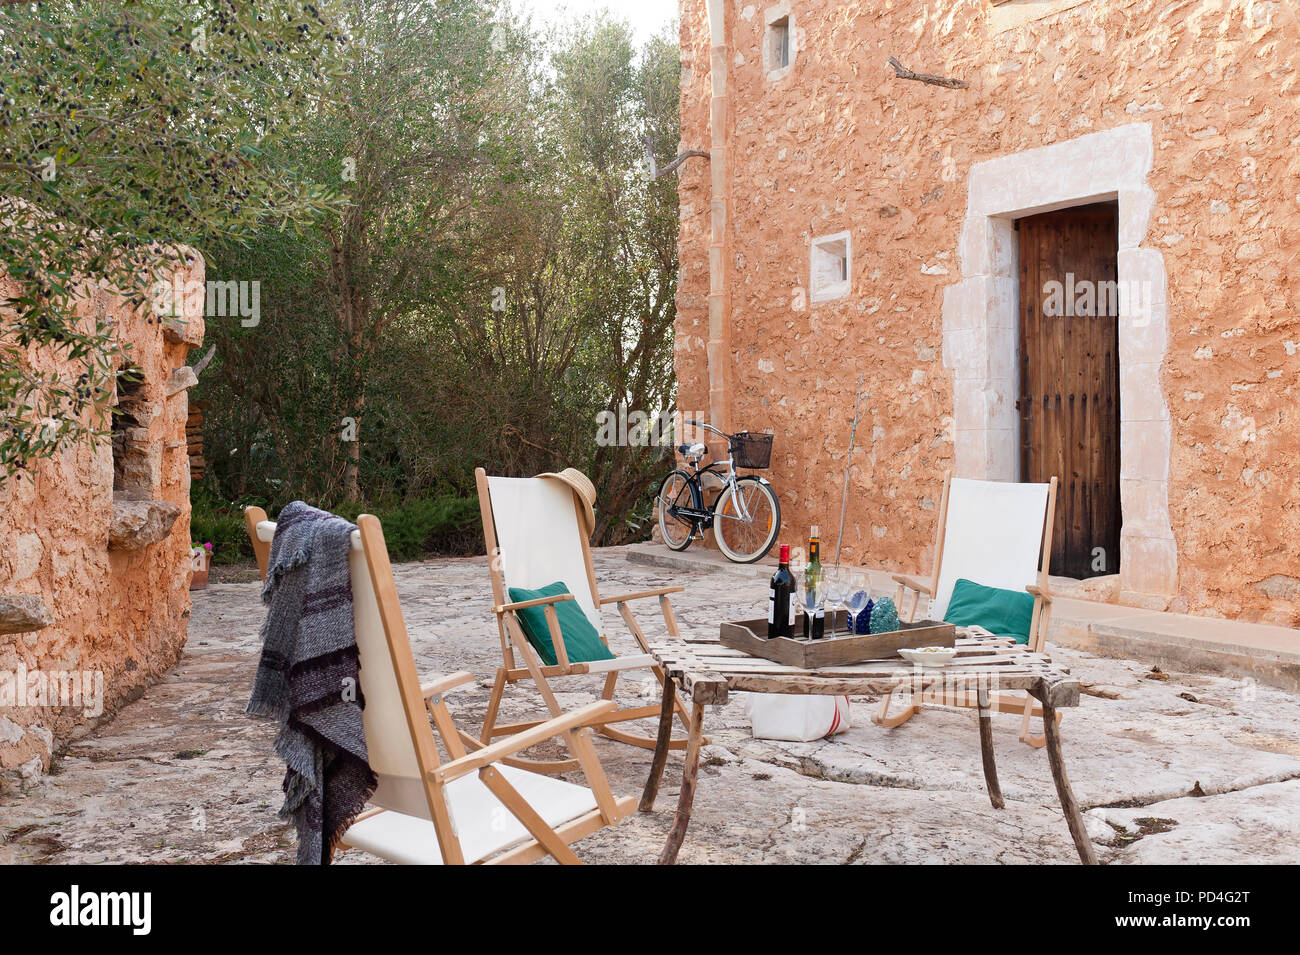 Chairs And Table In Mediterranean Style Courtyard